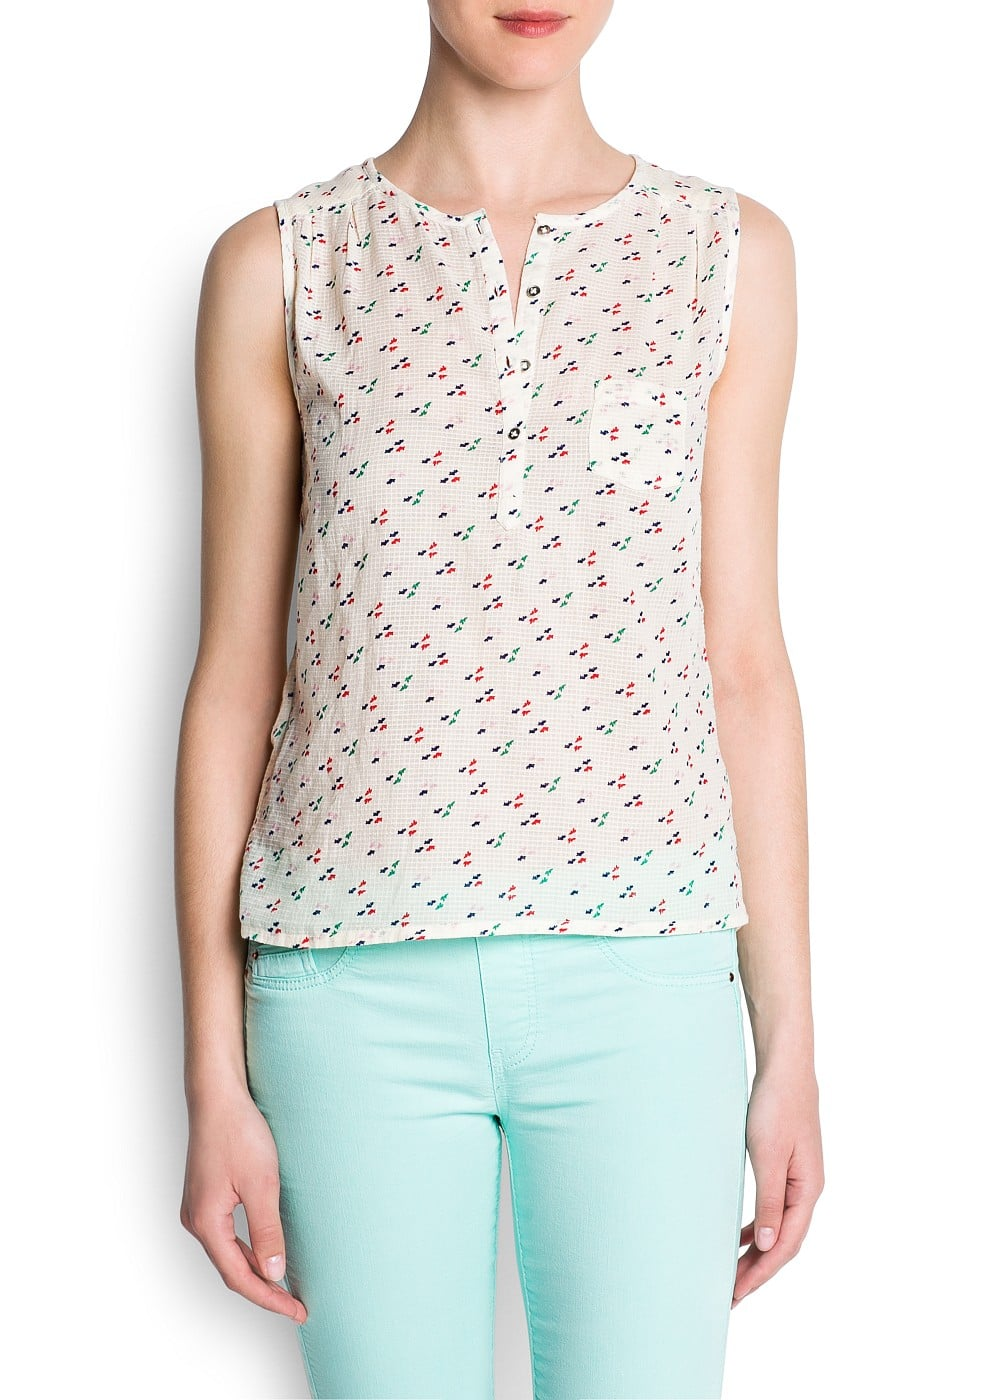 Textured cotton printed top